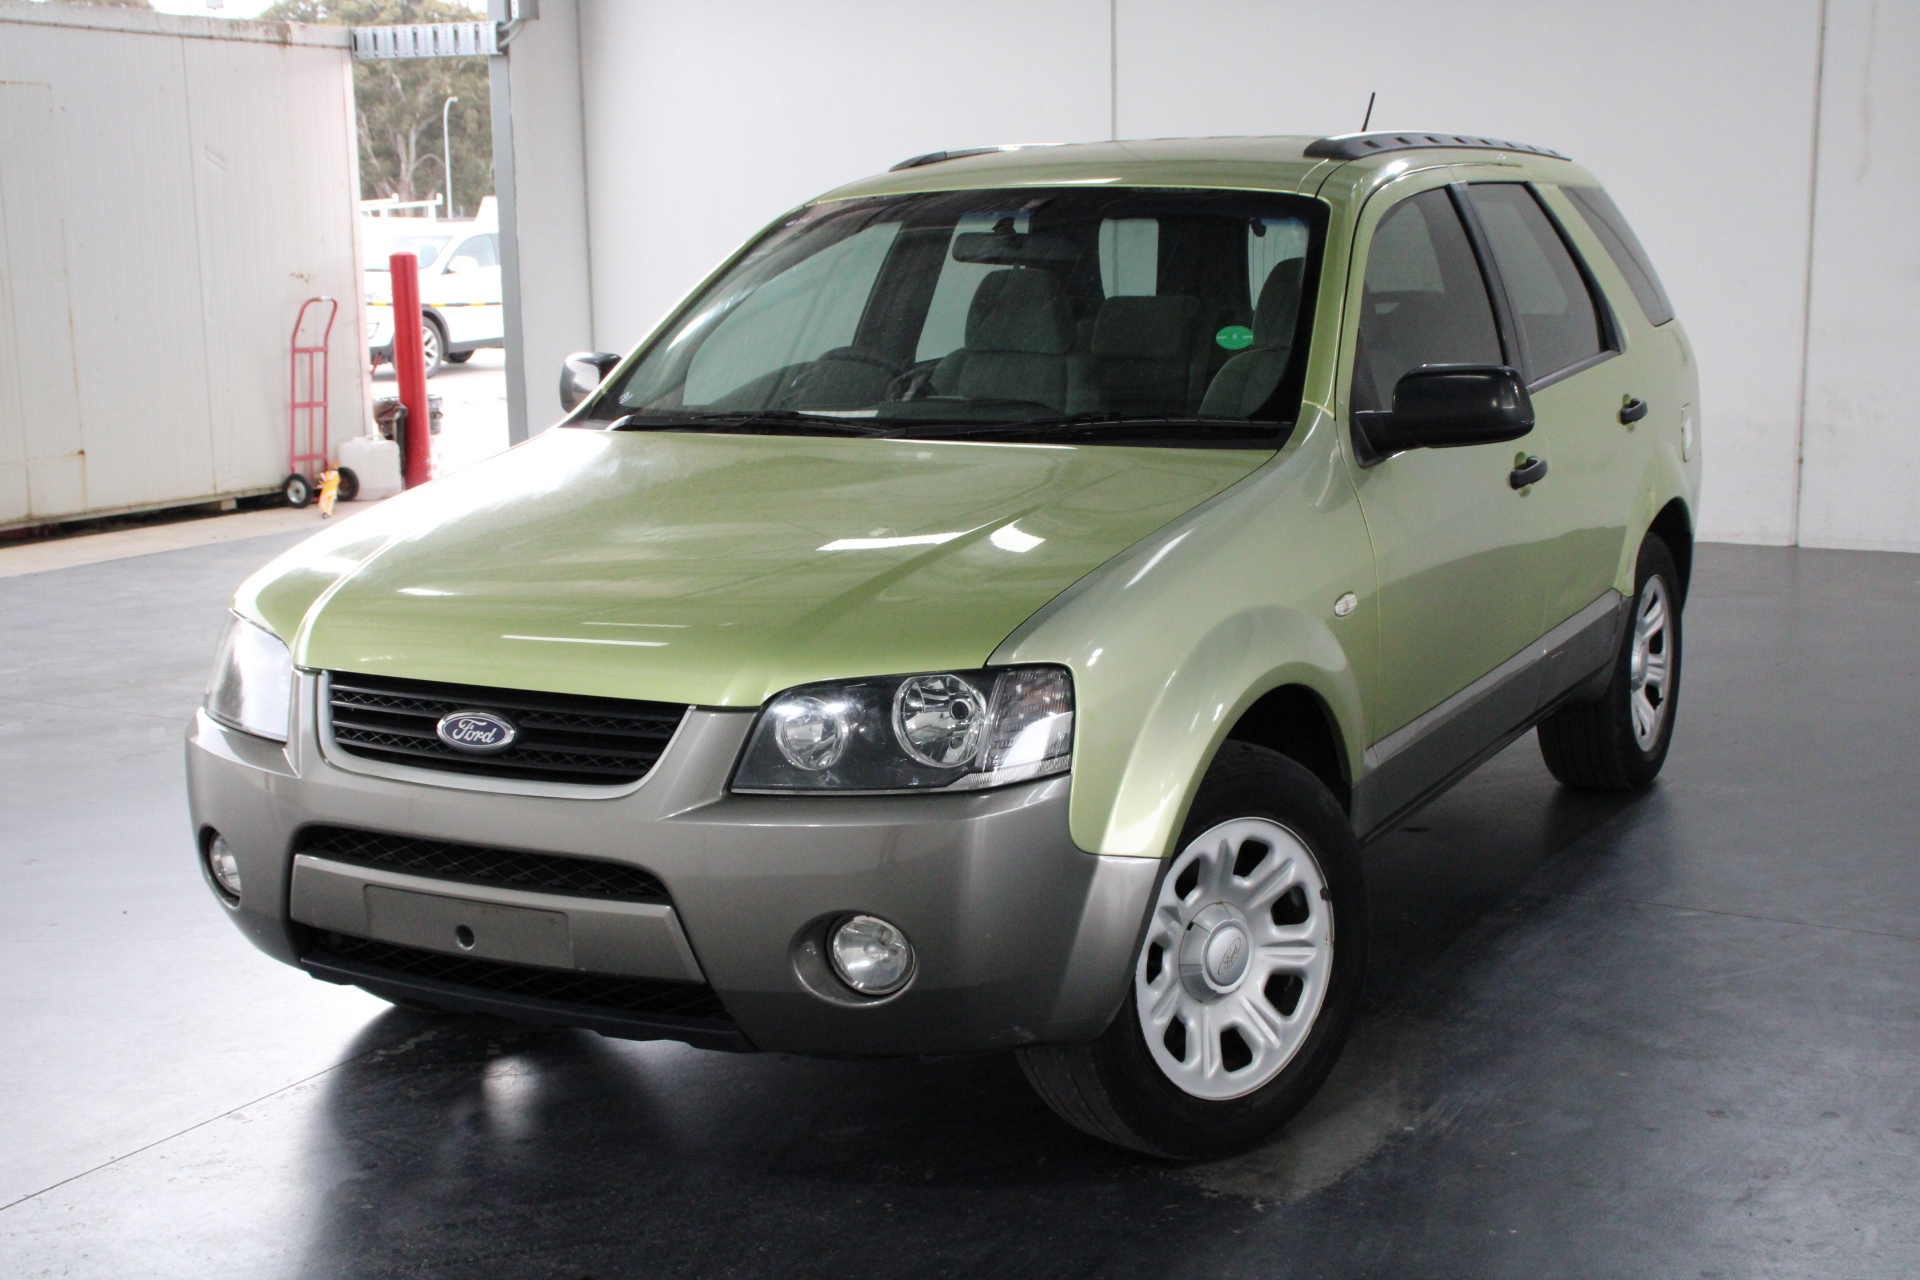 2005 Ford Territory TX (RWD) SX Automatic 7 Seats Wagon